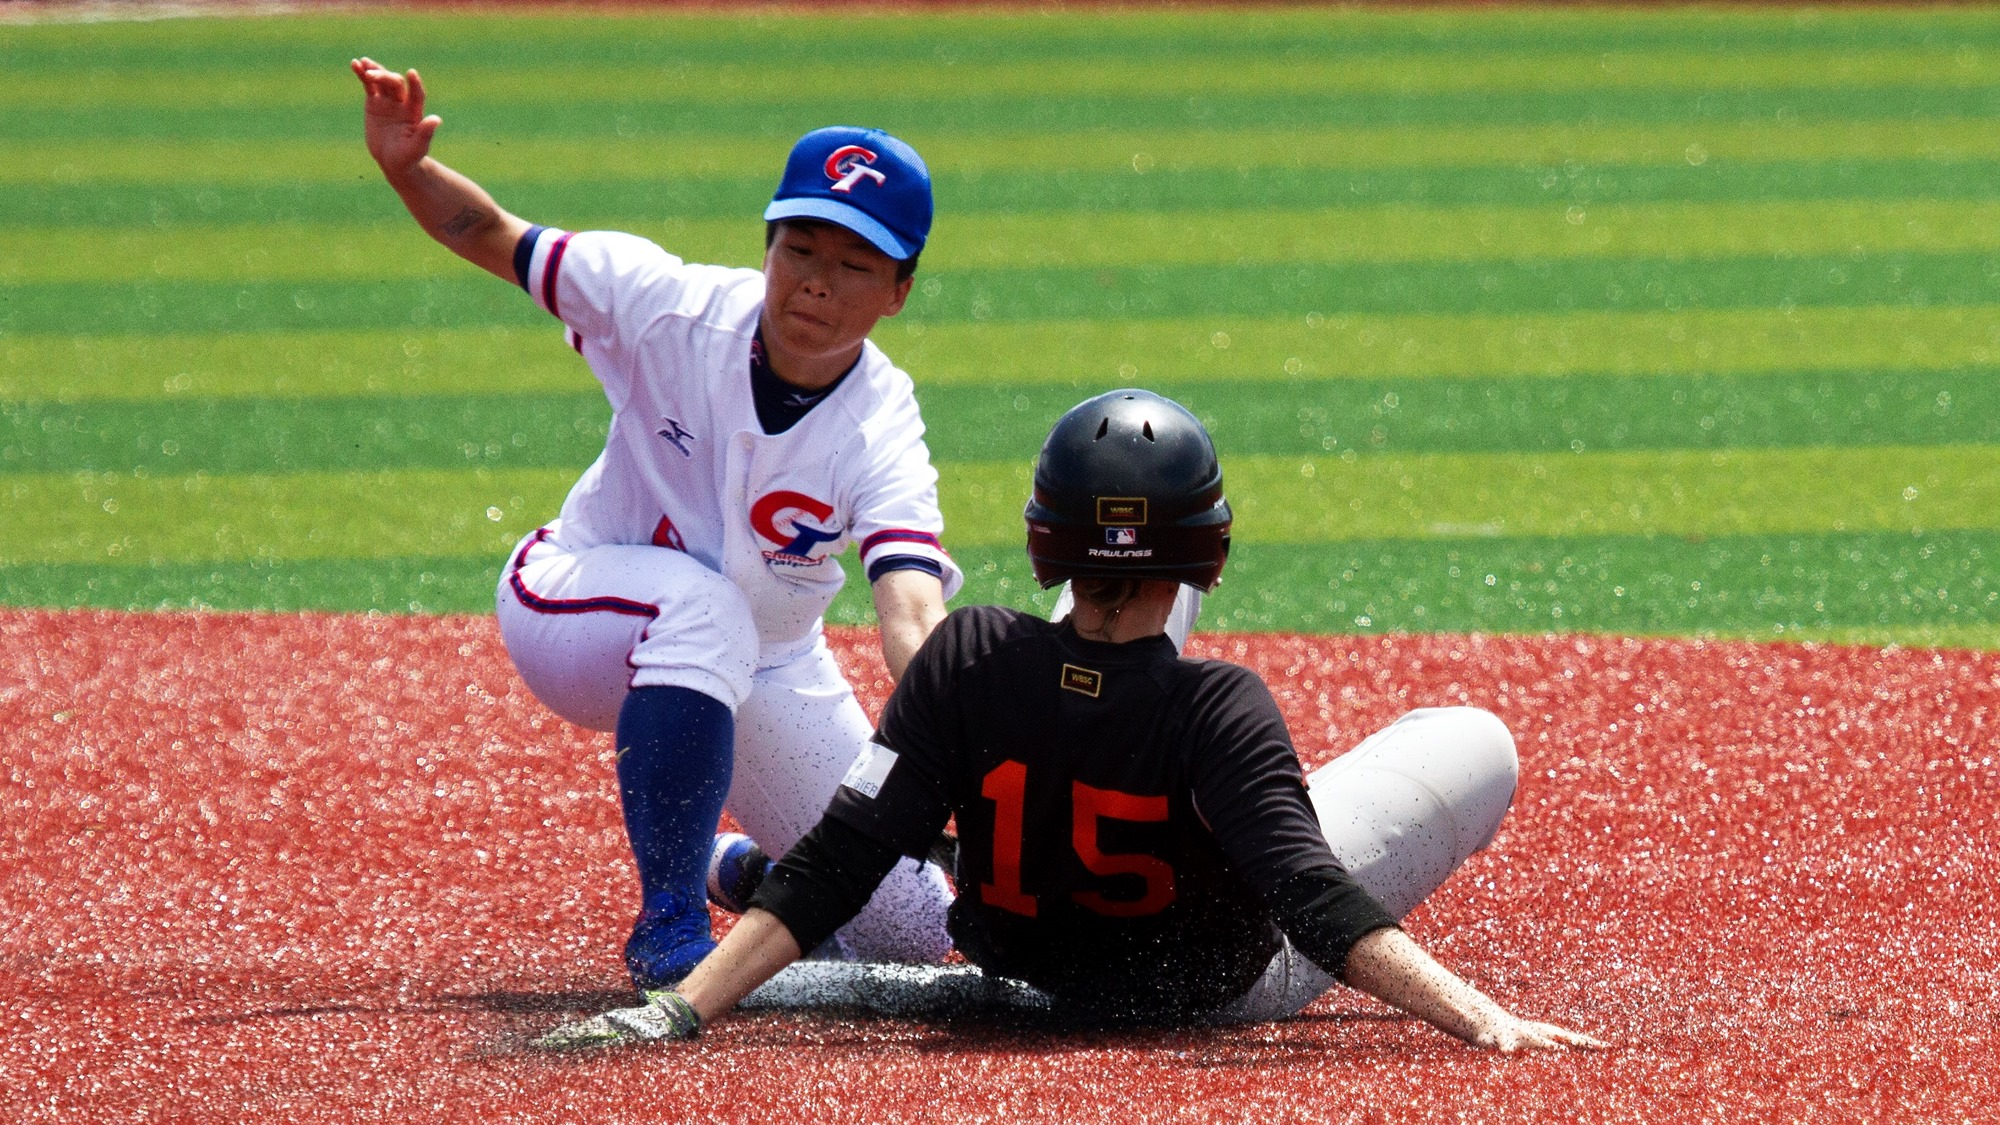 Sofie Van der Wiel slides into second to avoid a tag by Tsai Ming Chen